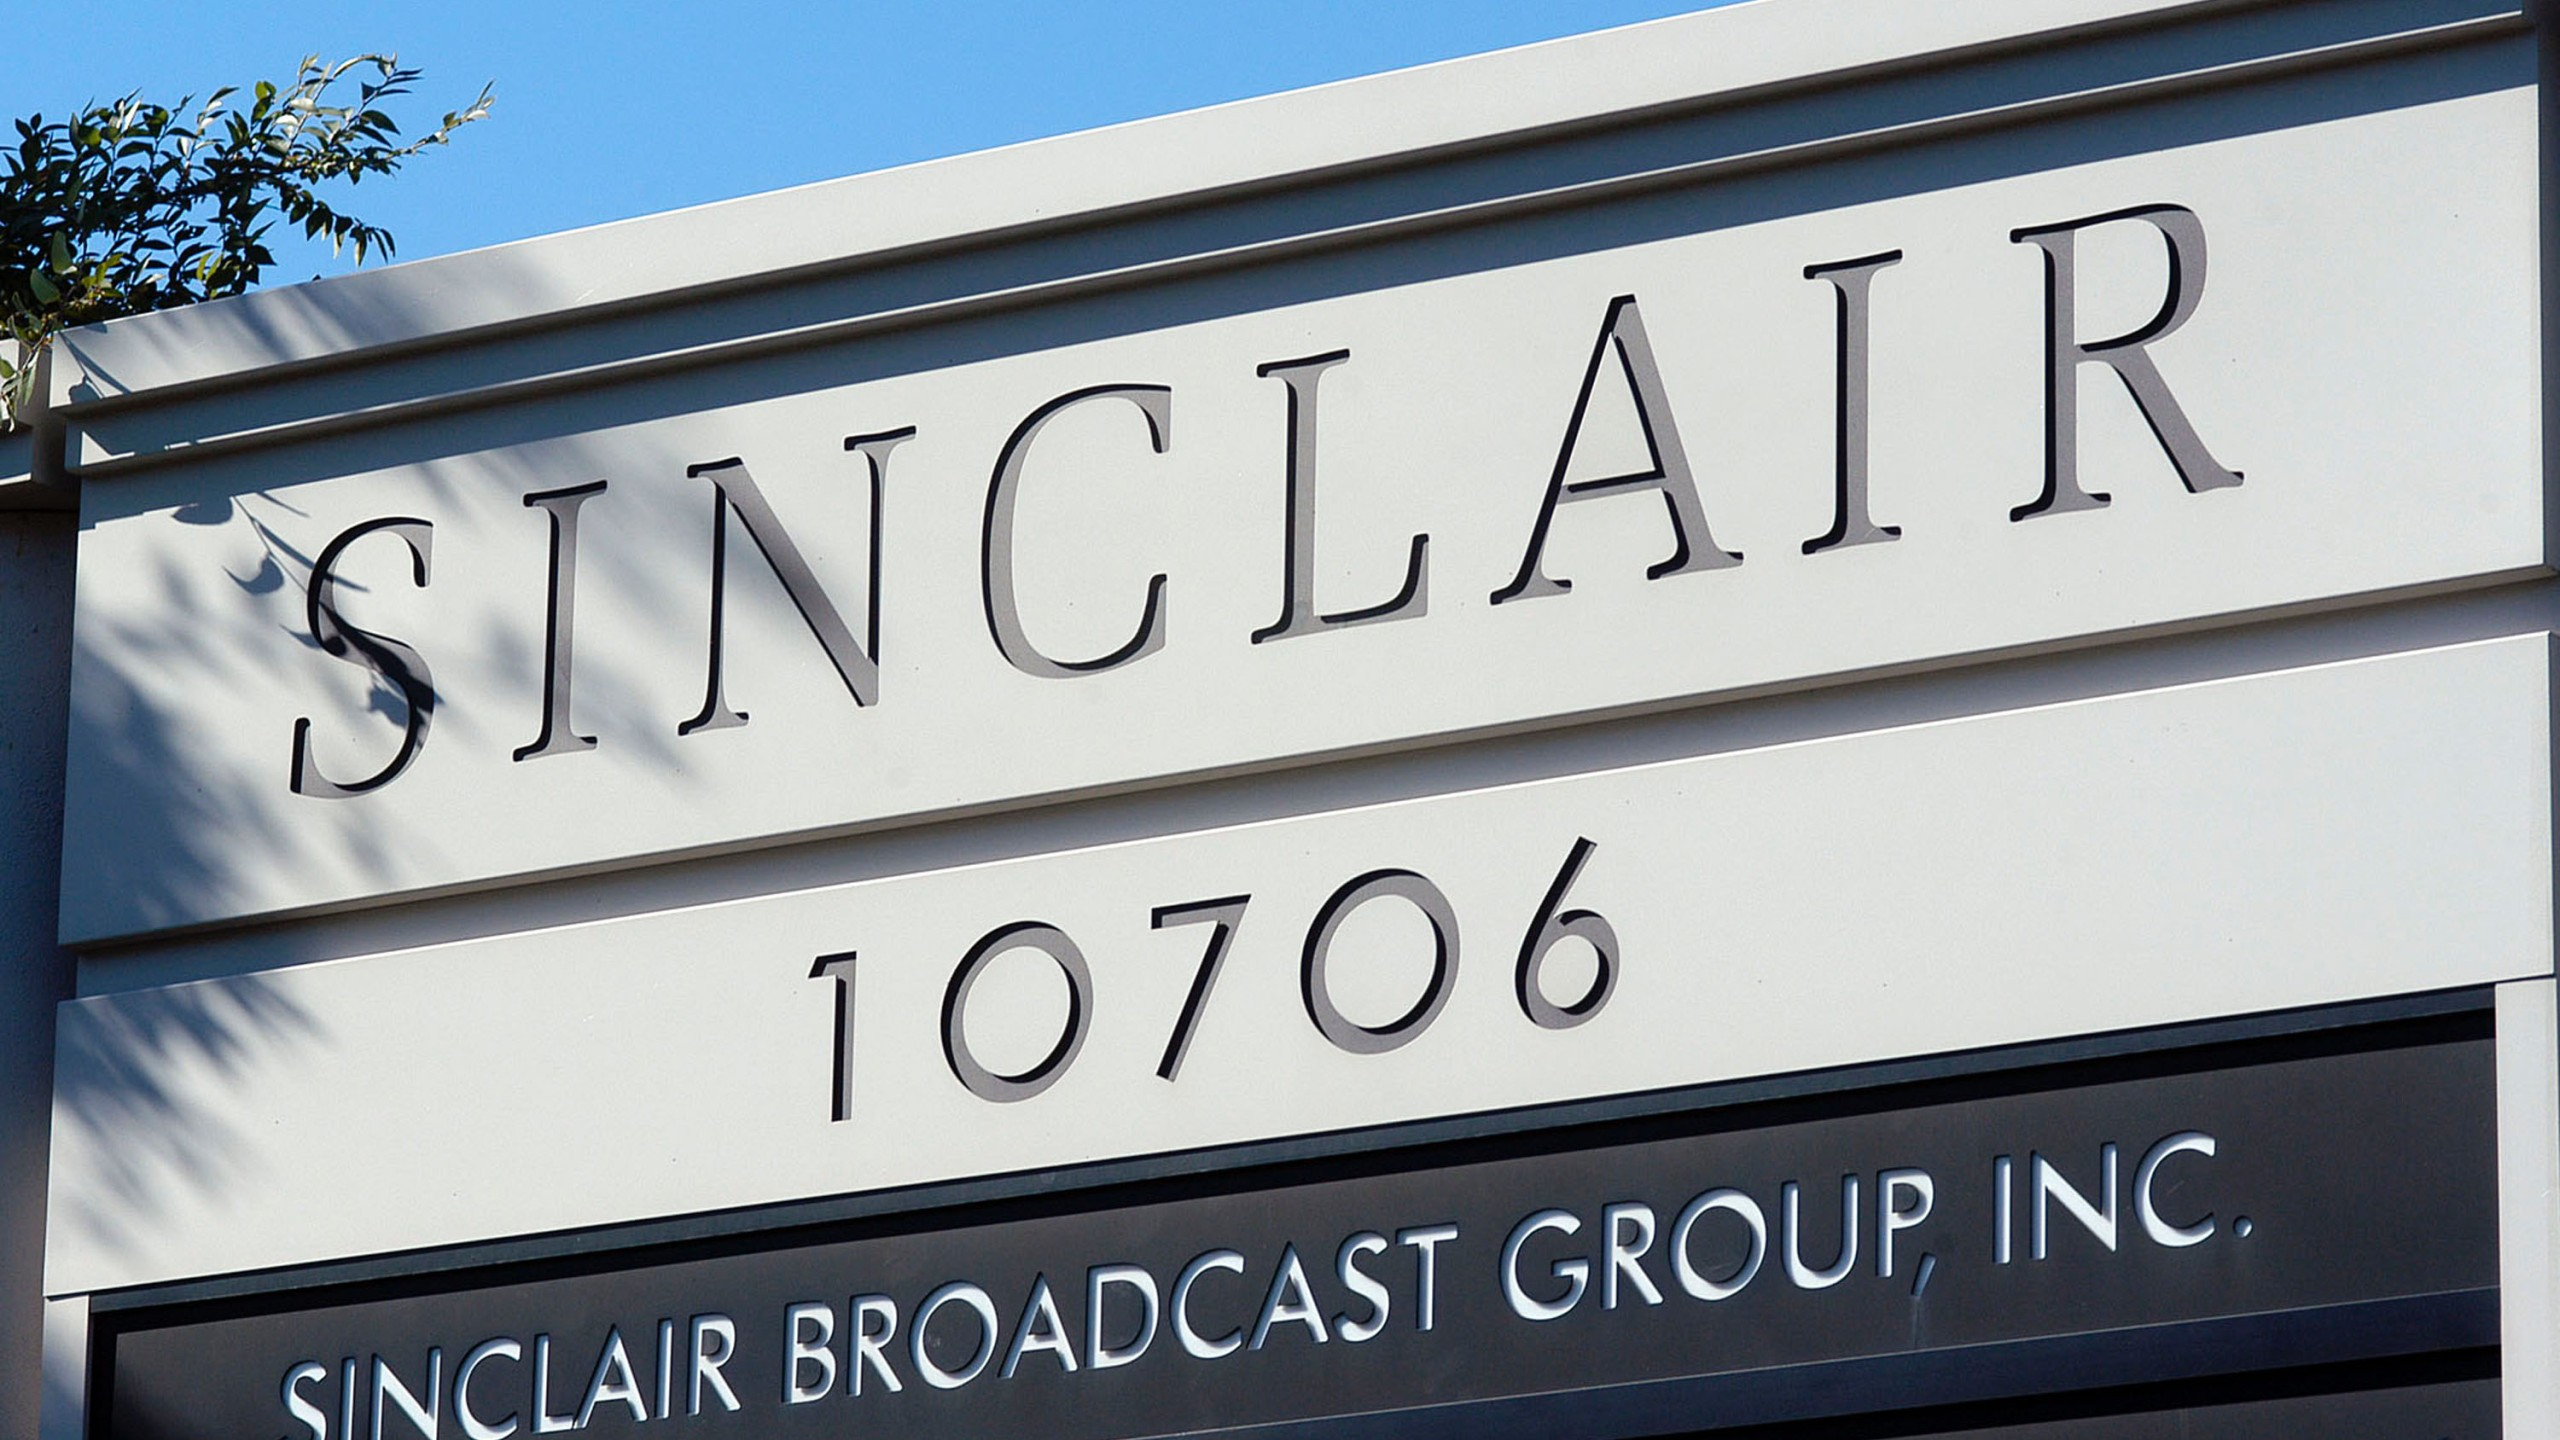 A sign for the Sinclair Broadcast building is seen in a business district Oct. 12, 2004, in Hunt Valley, Maryland. (Credit: William Thomas Cain / Getty Images)